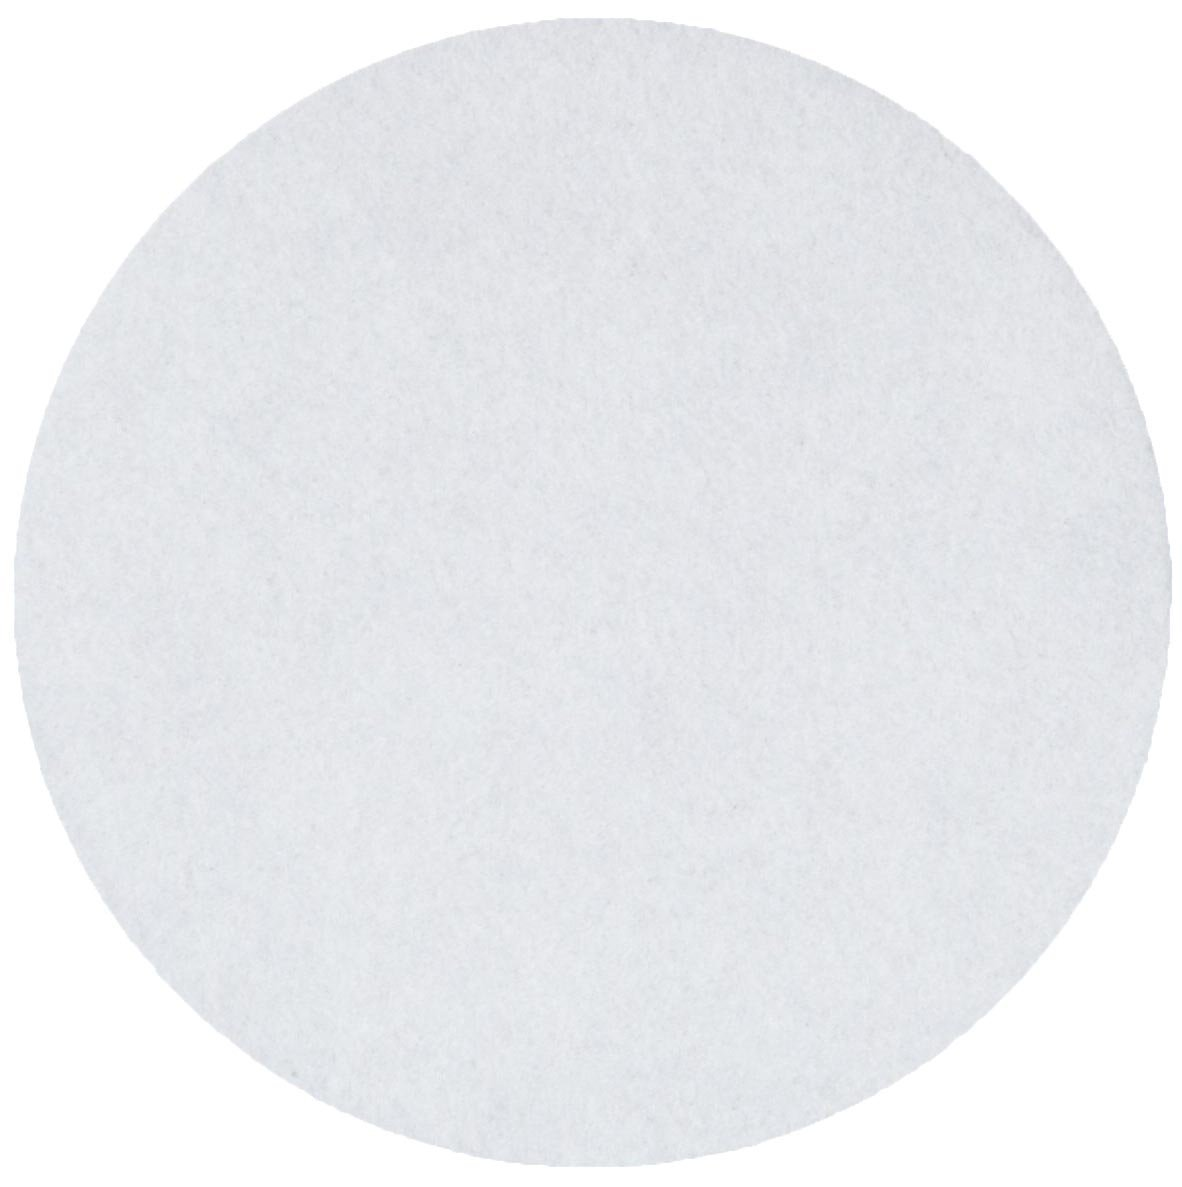 Whatman 10311808 Quantitative Filter Paper Circles 4 7 Micron Grade 597 70mm Diameter Pack of 100